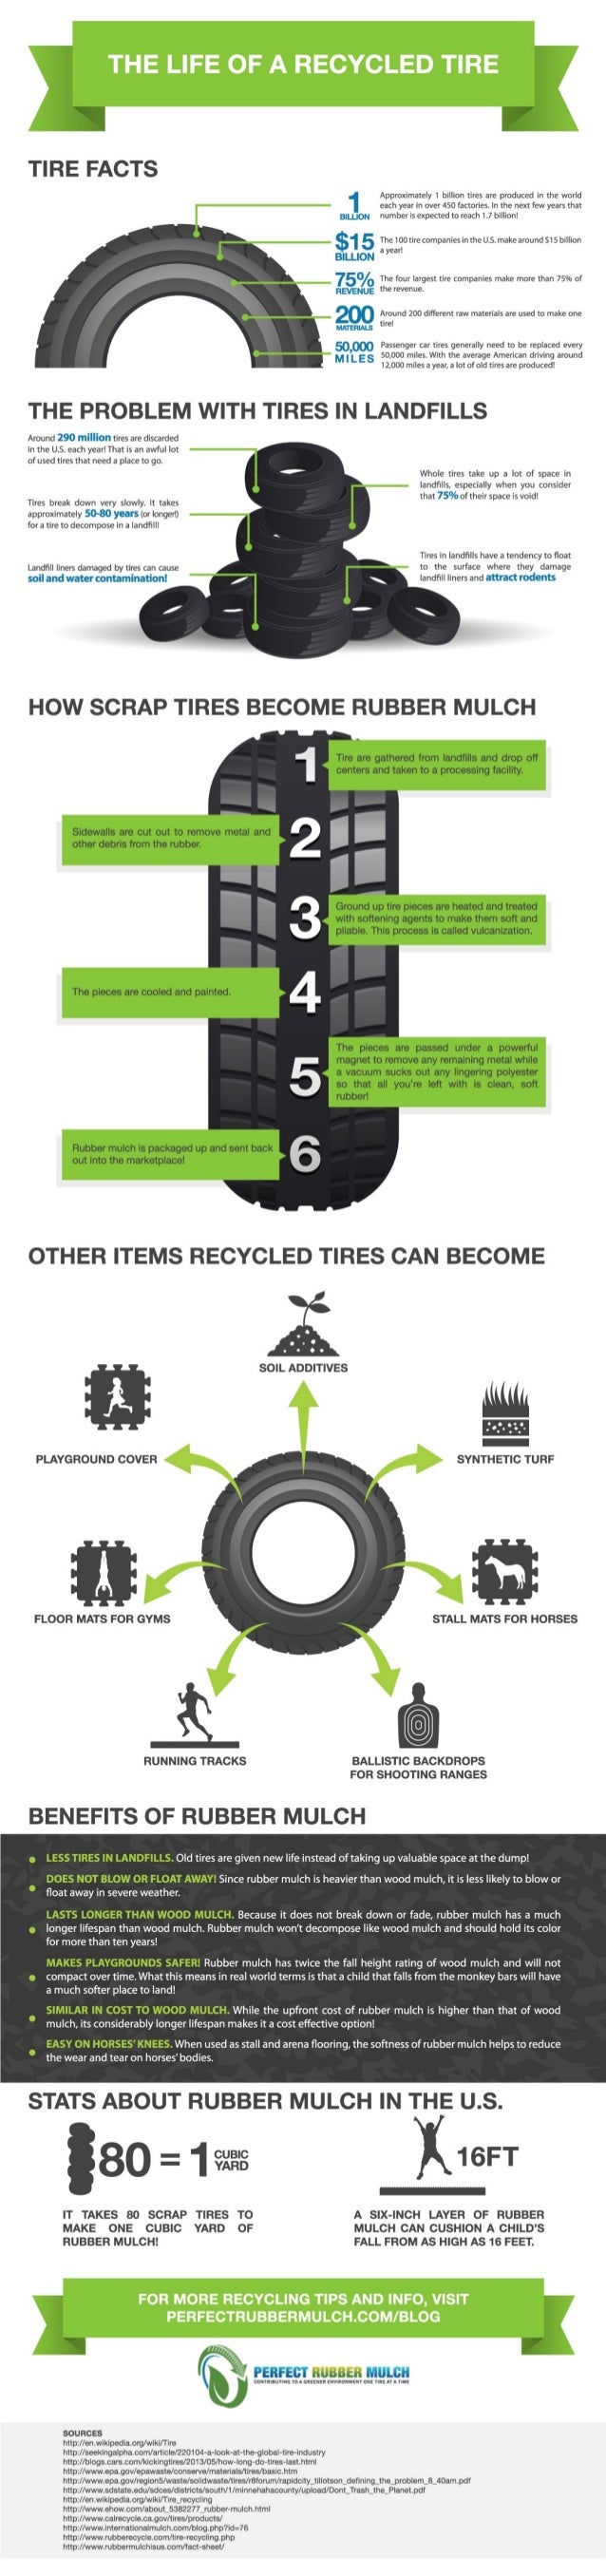 Life of a Recycled Tire Infographic